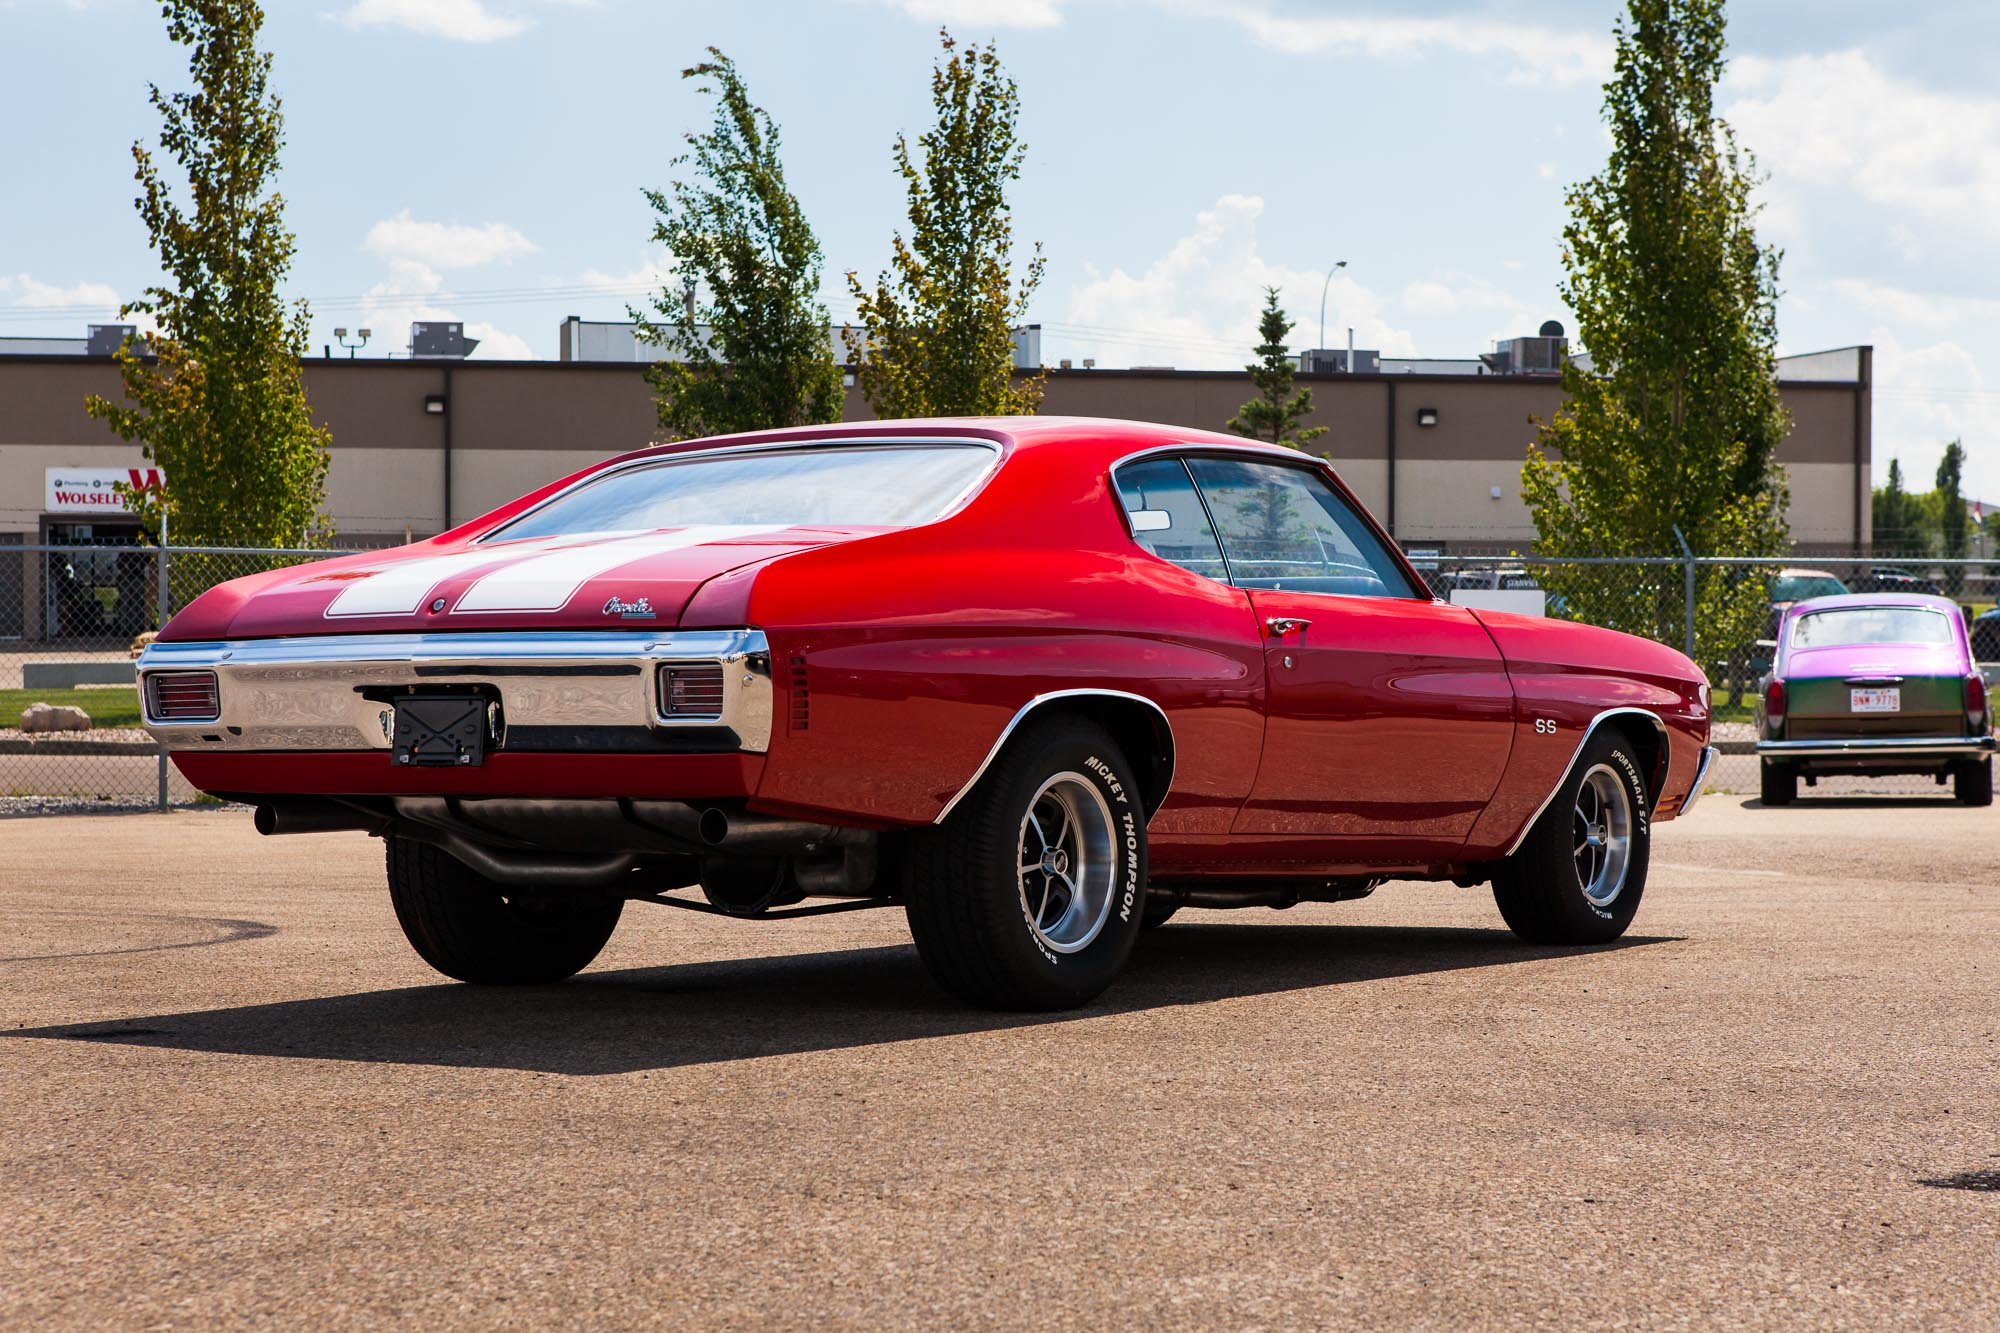 Muscle Car For Sale >> 1970 Chevelle SS - The Iron Garage